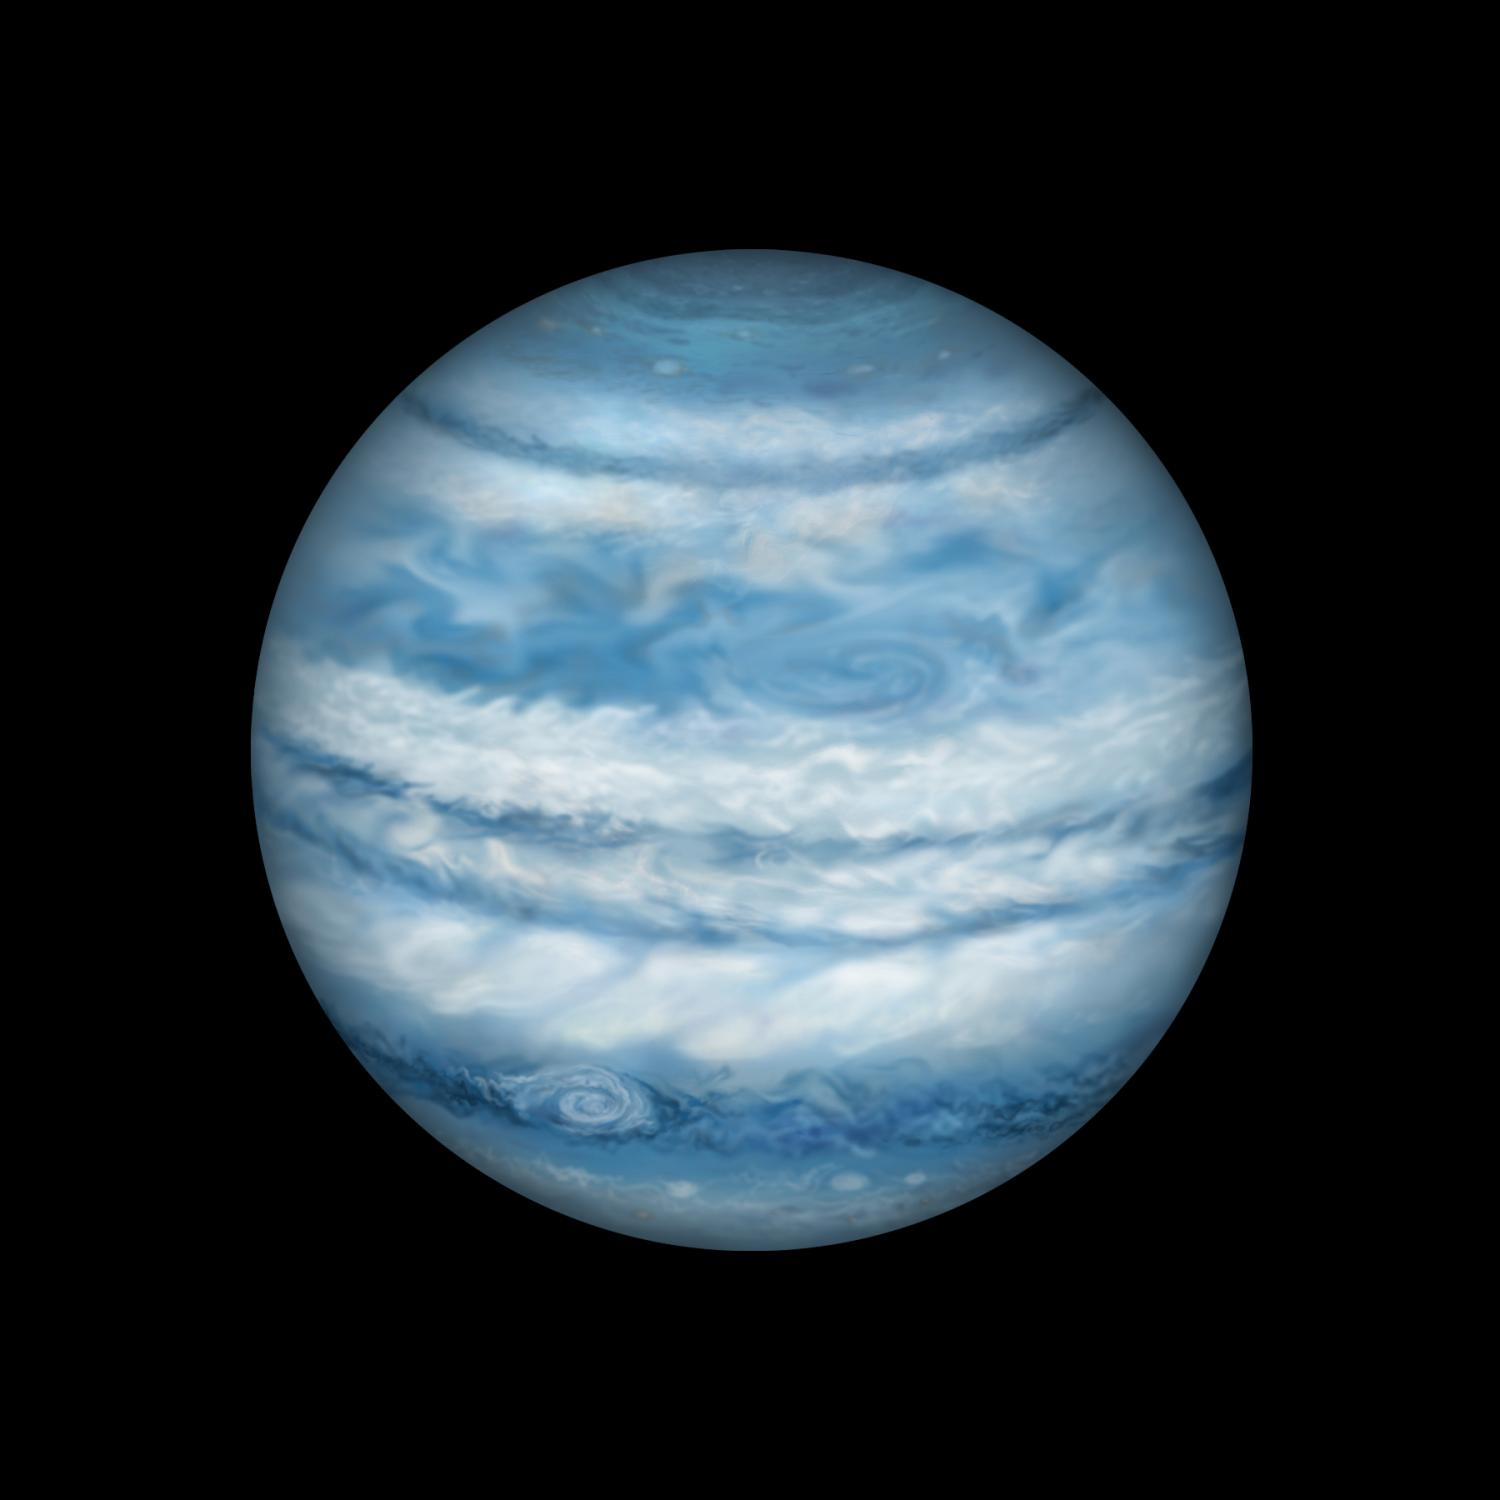 blue giant planet - photo #18